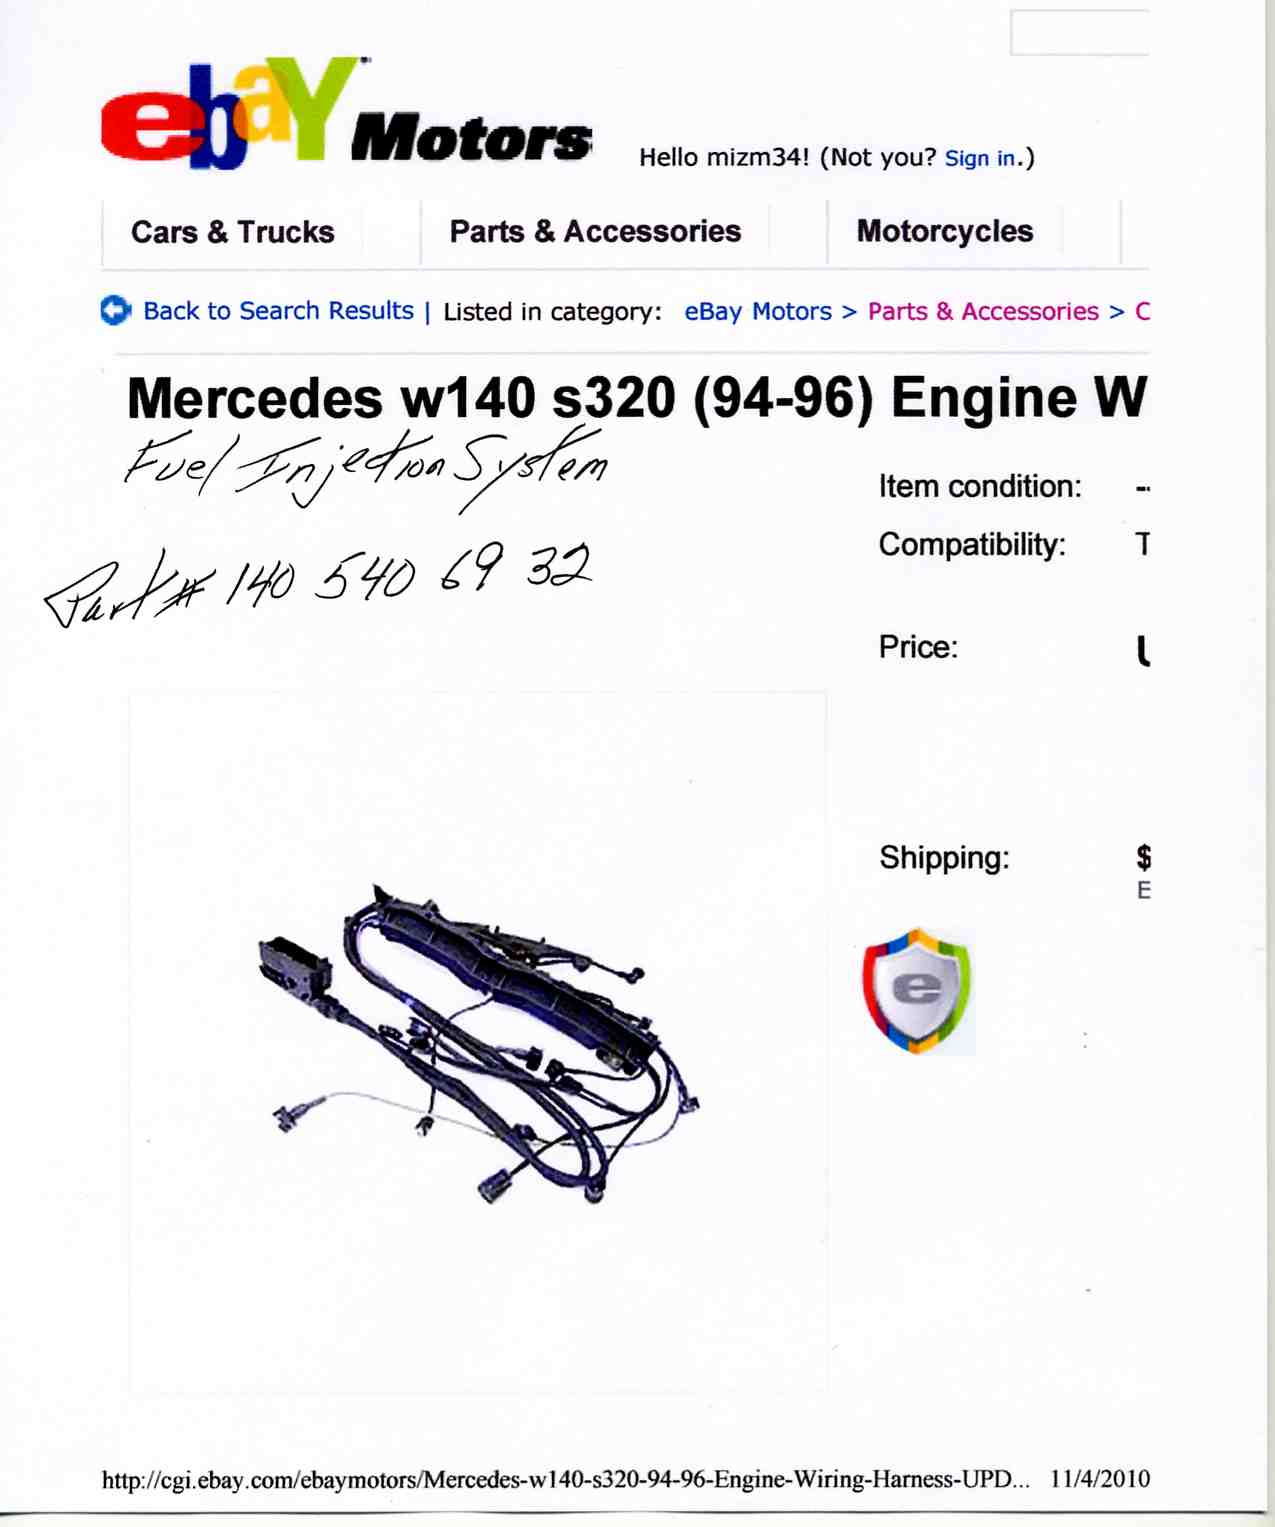 hight resolution of 1995 s320 engine wire harness img008 jpg sg motorsports m104 wiring diagrams